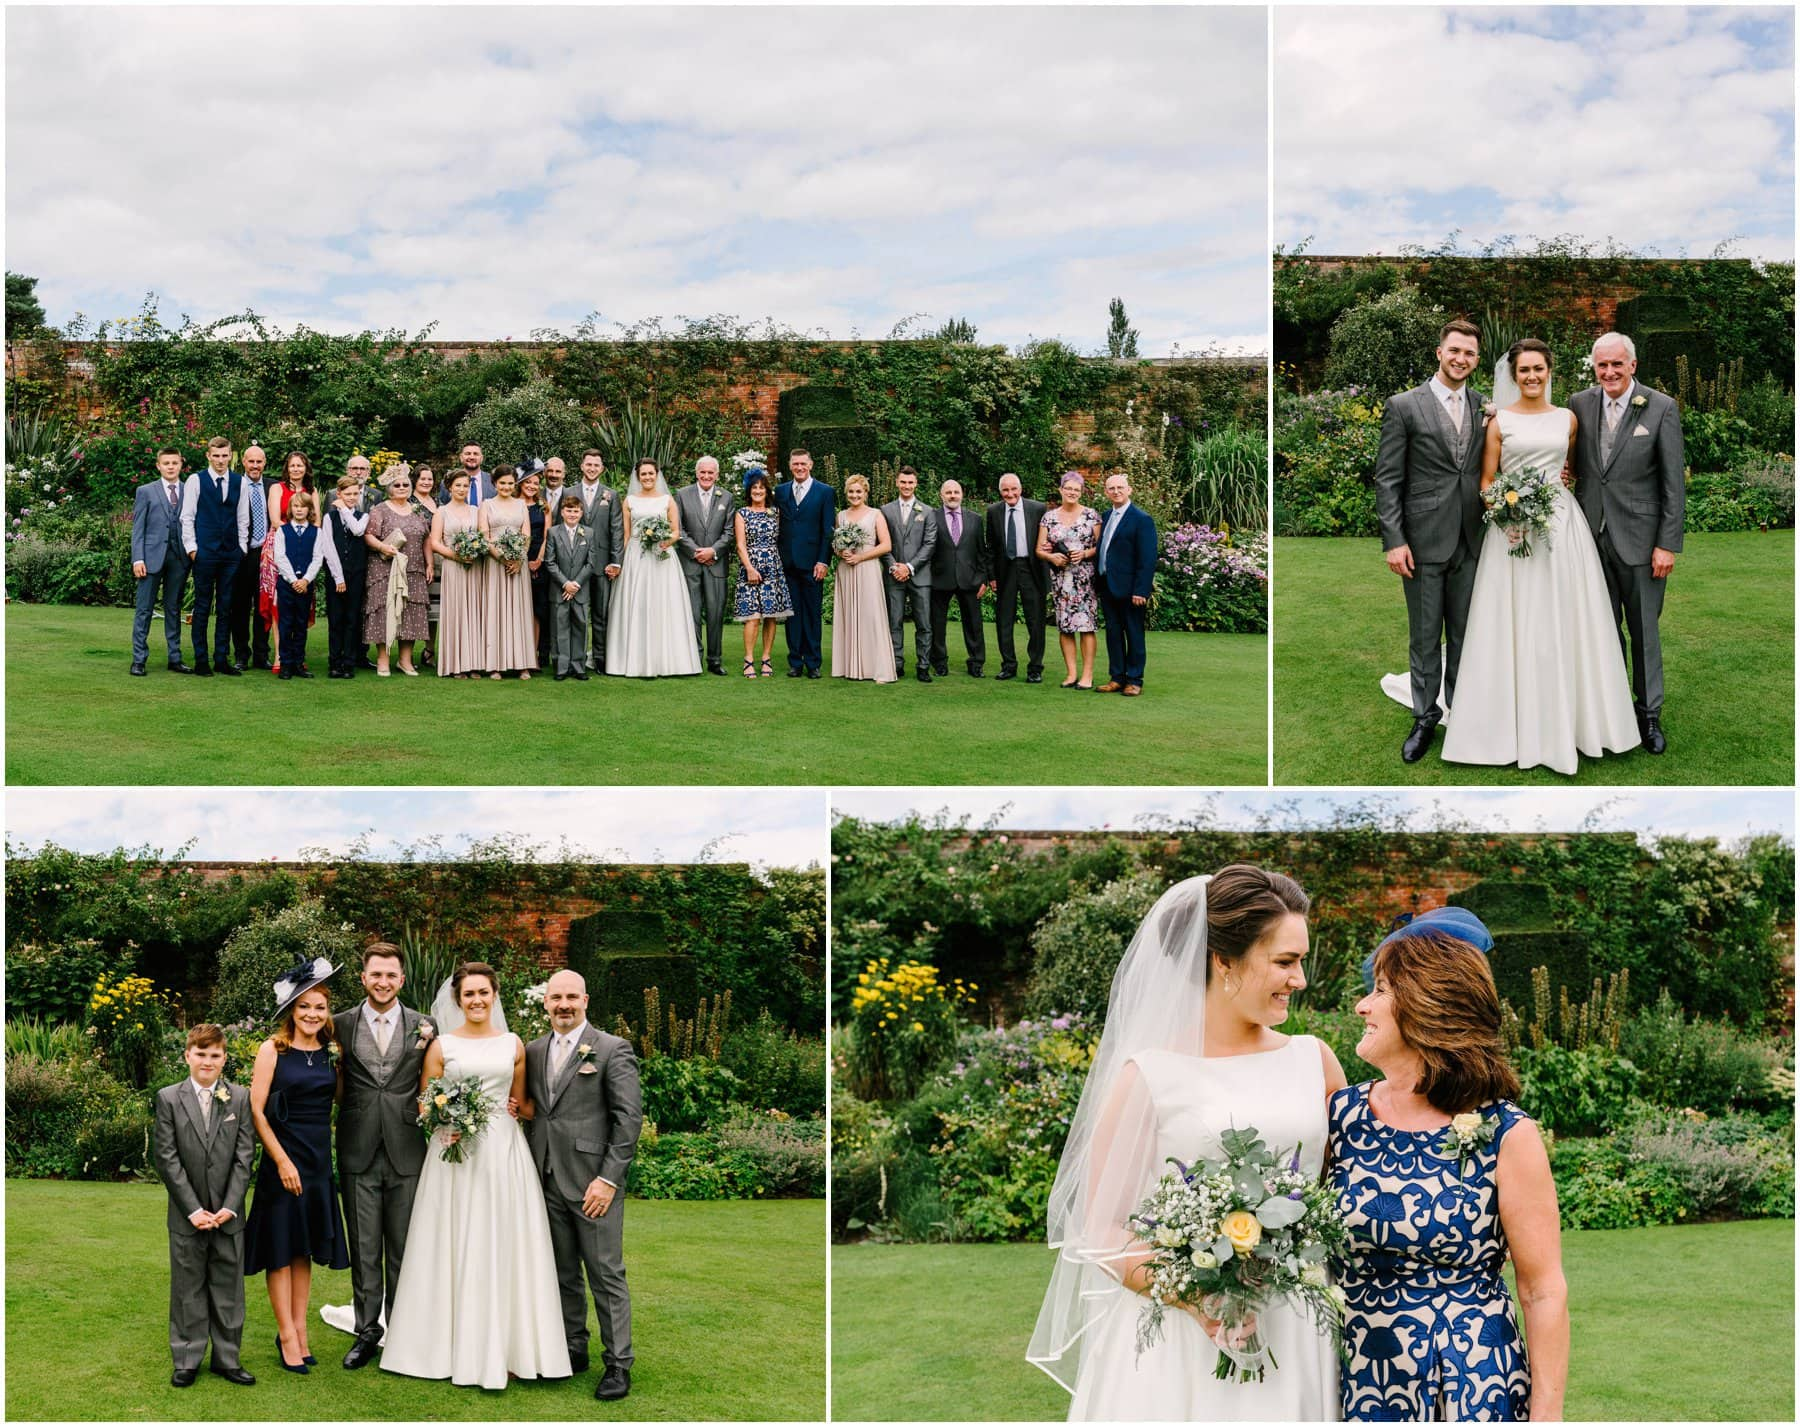 Goldstone Hall Wedding with photos by West Midlands Wedding Photographer Lisa Carpenter Photography.